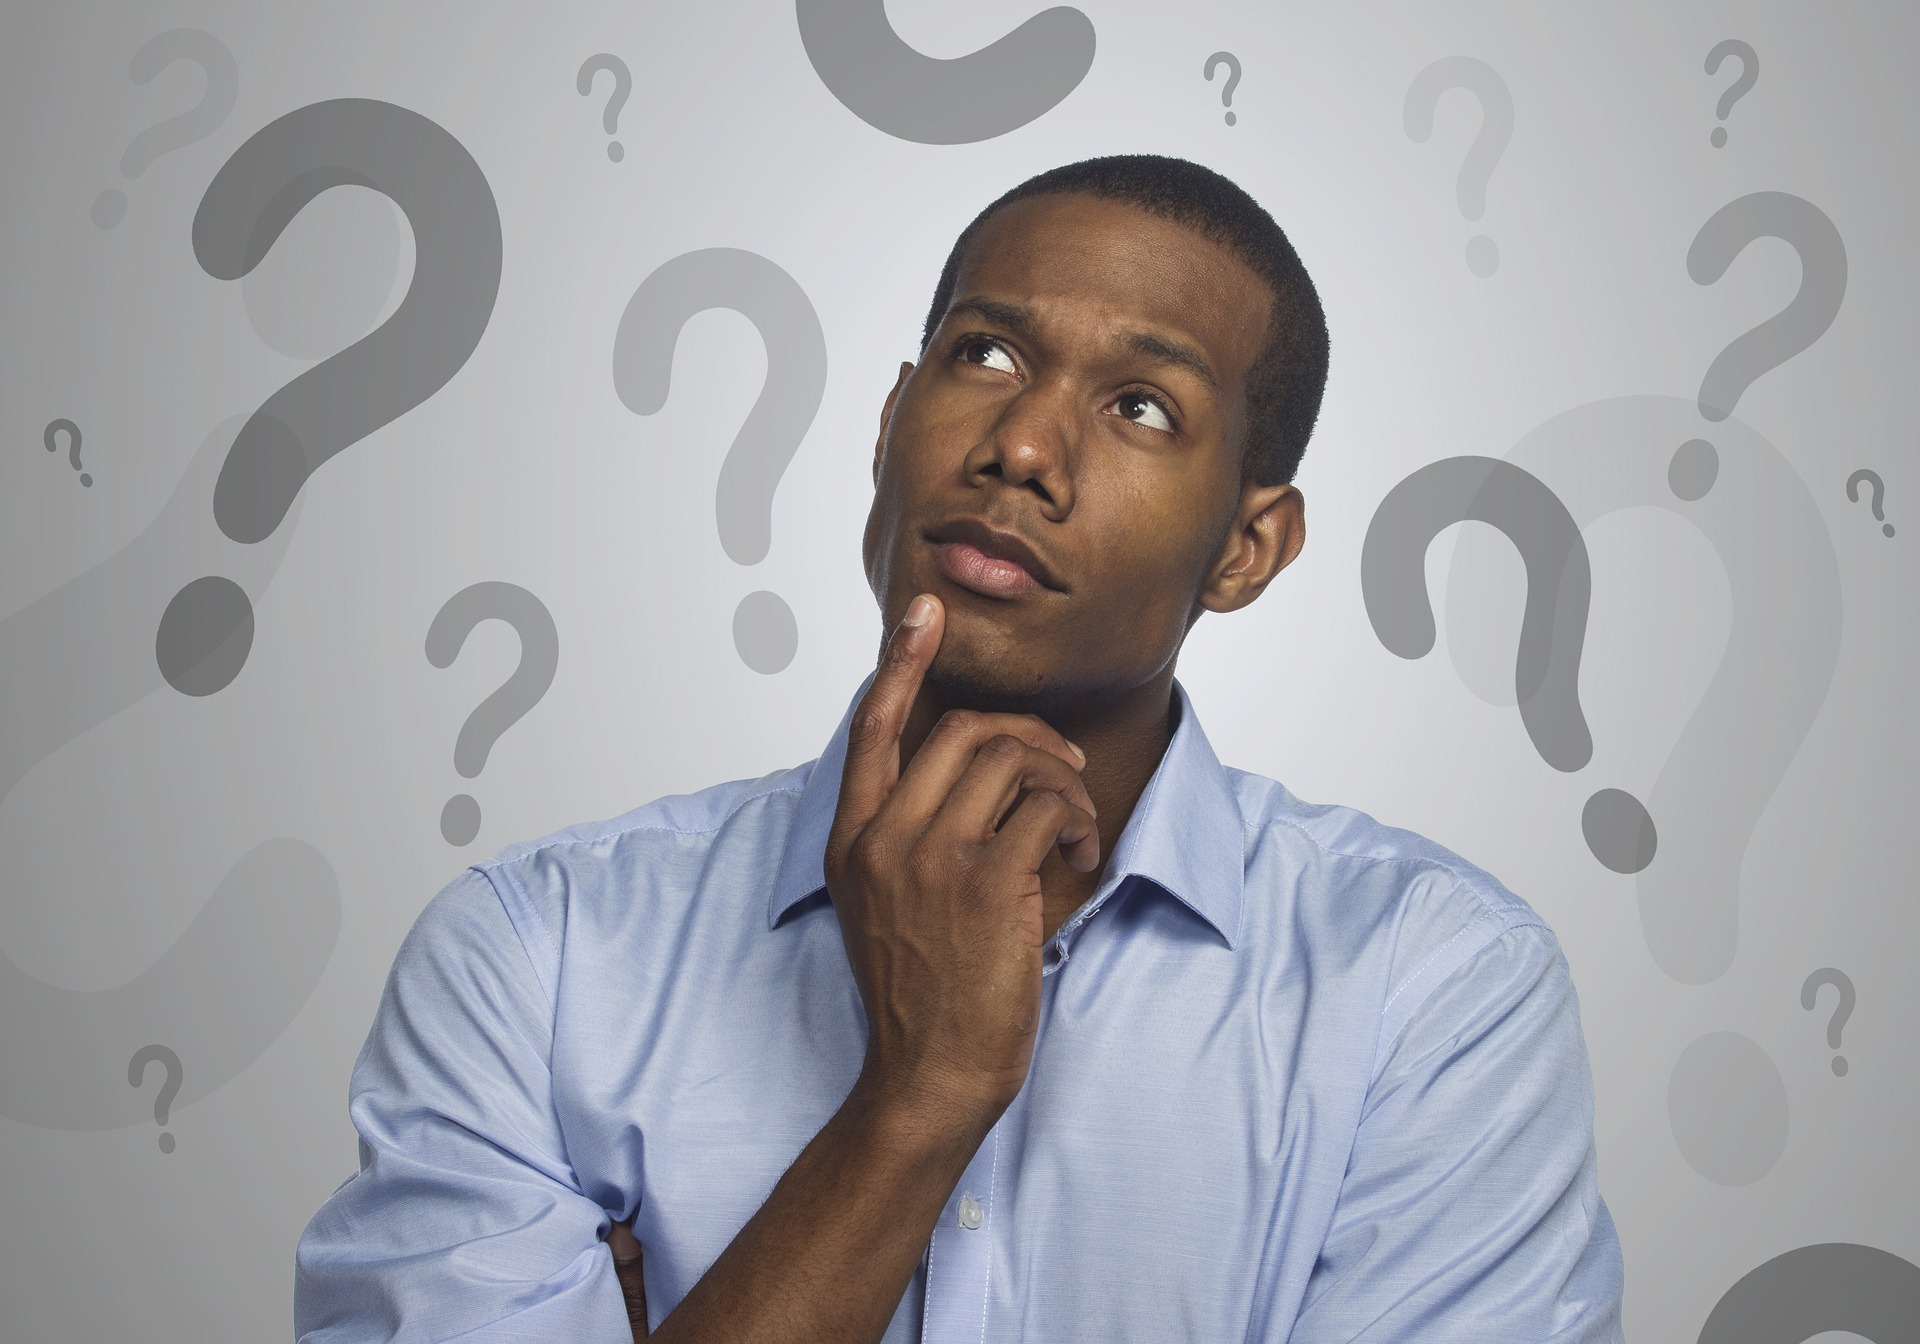 Man pondering with hand on chin with question marks floating around him